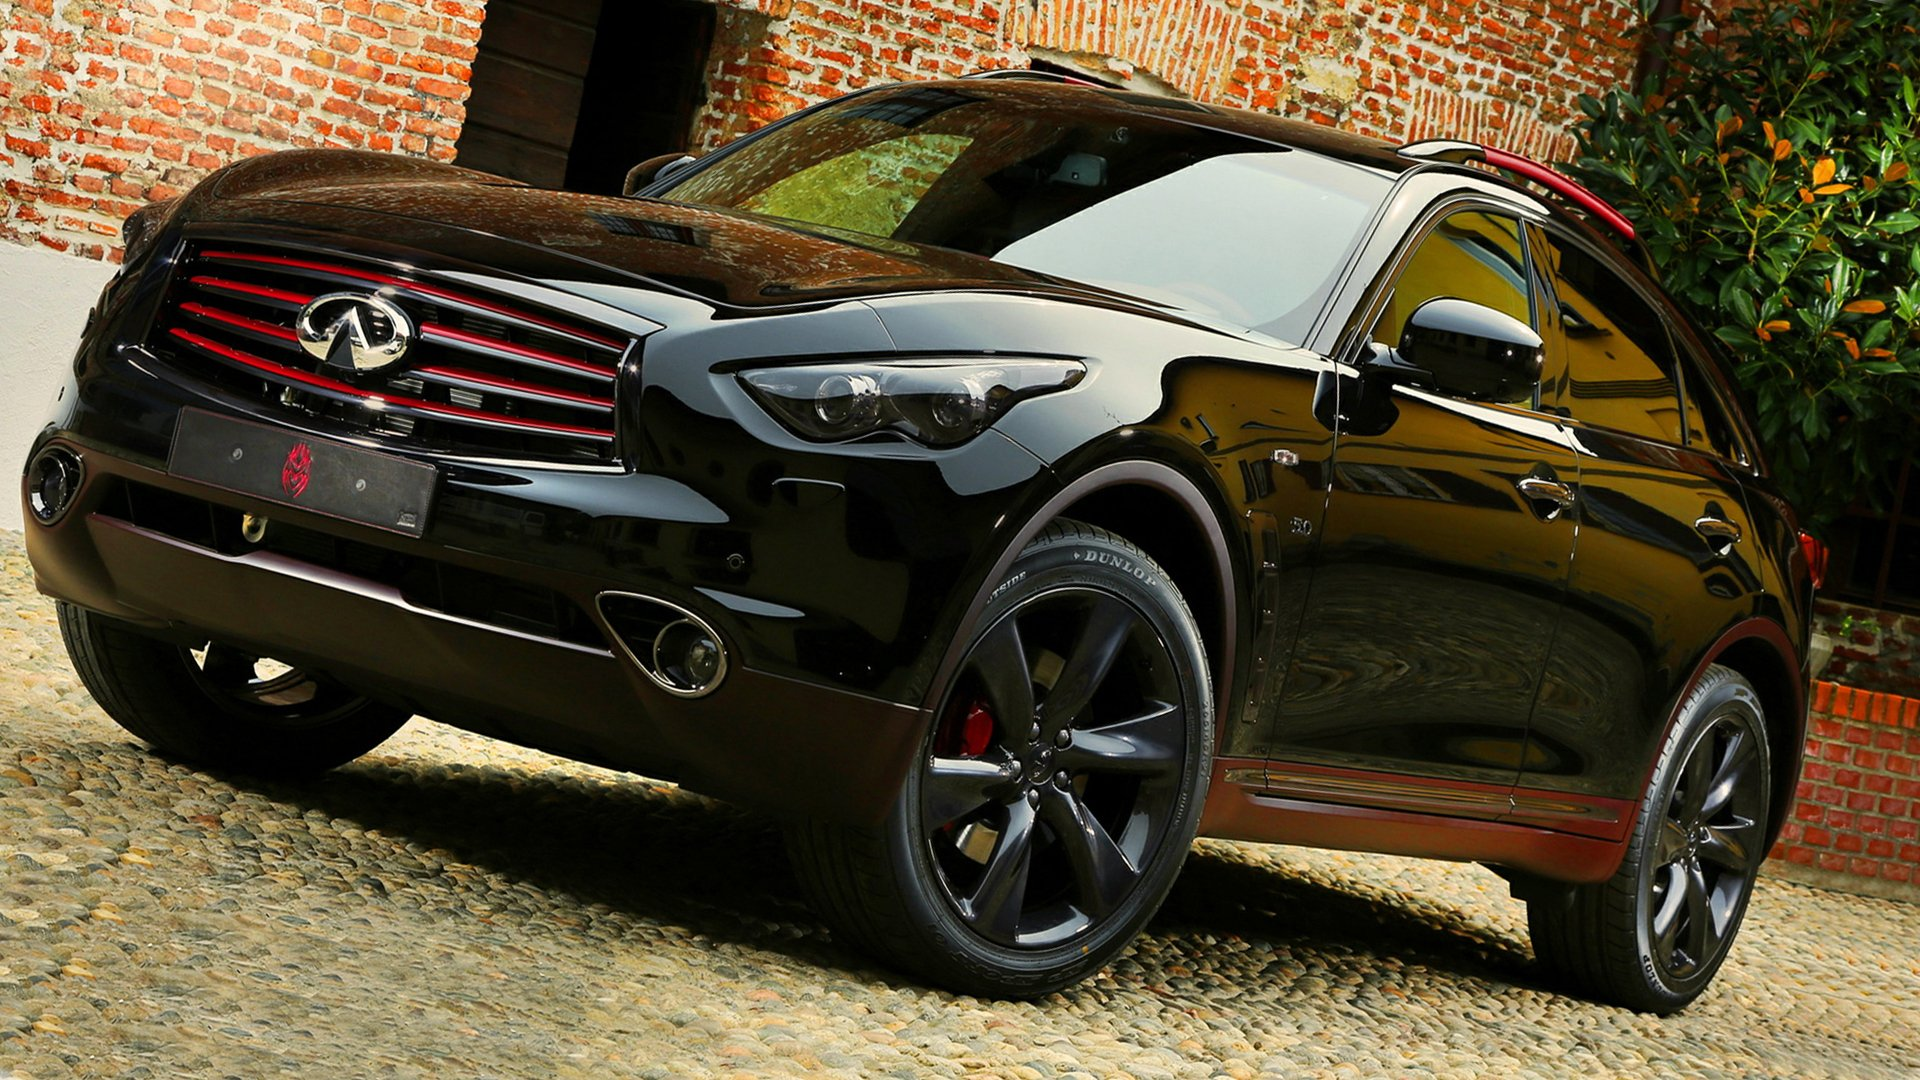 New 2019 Infiniti QX70 First Pictures